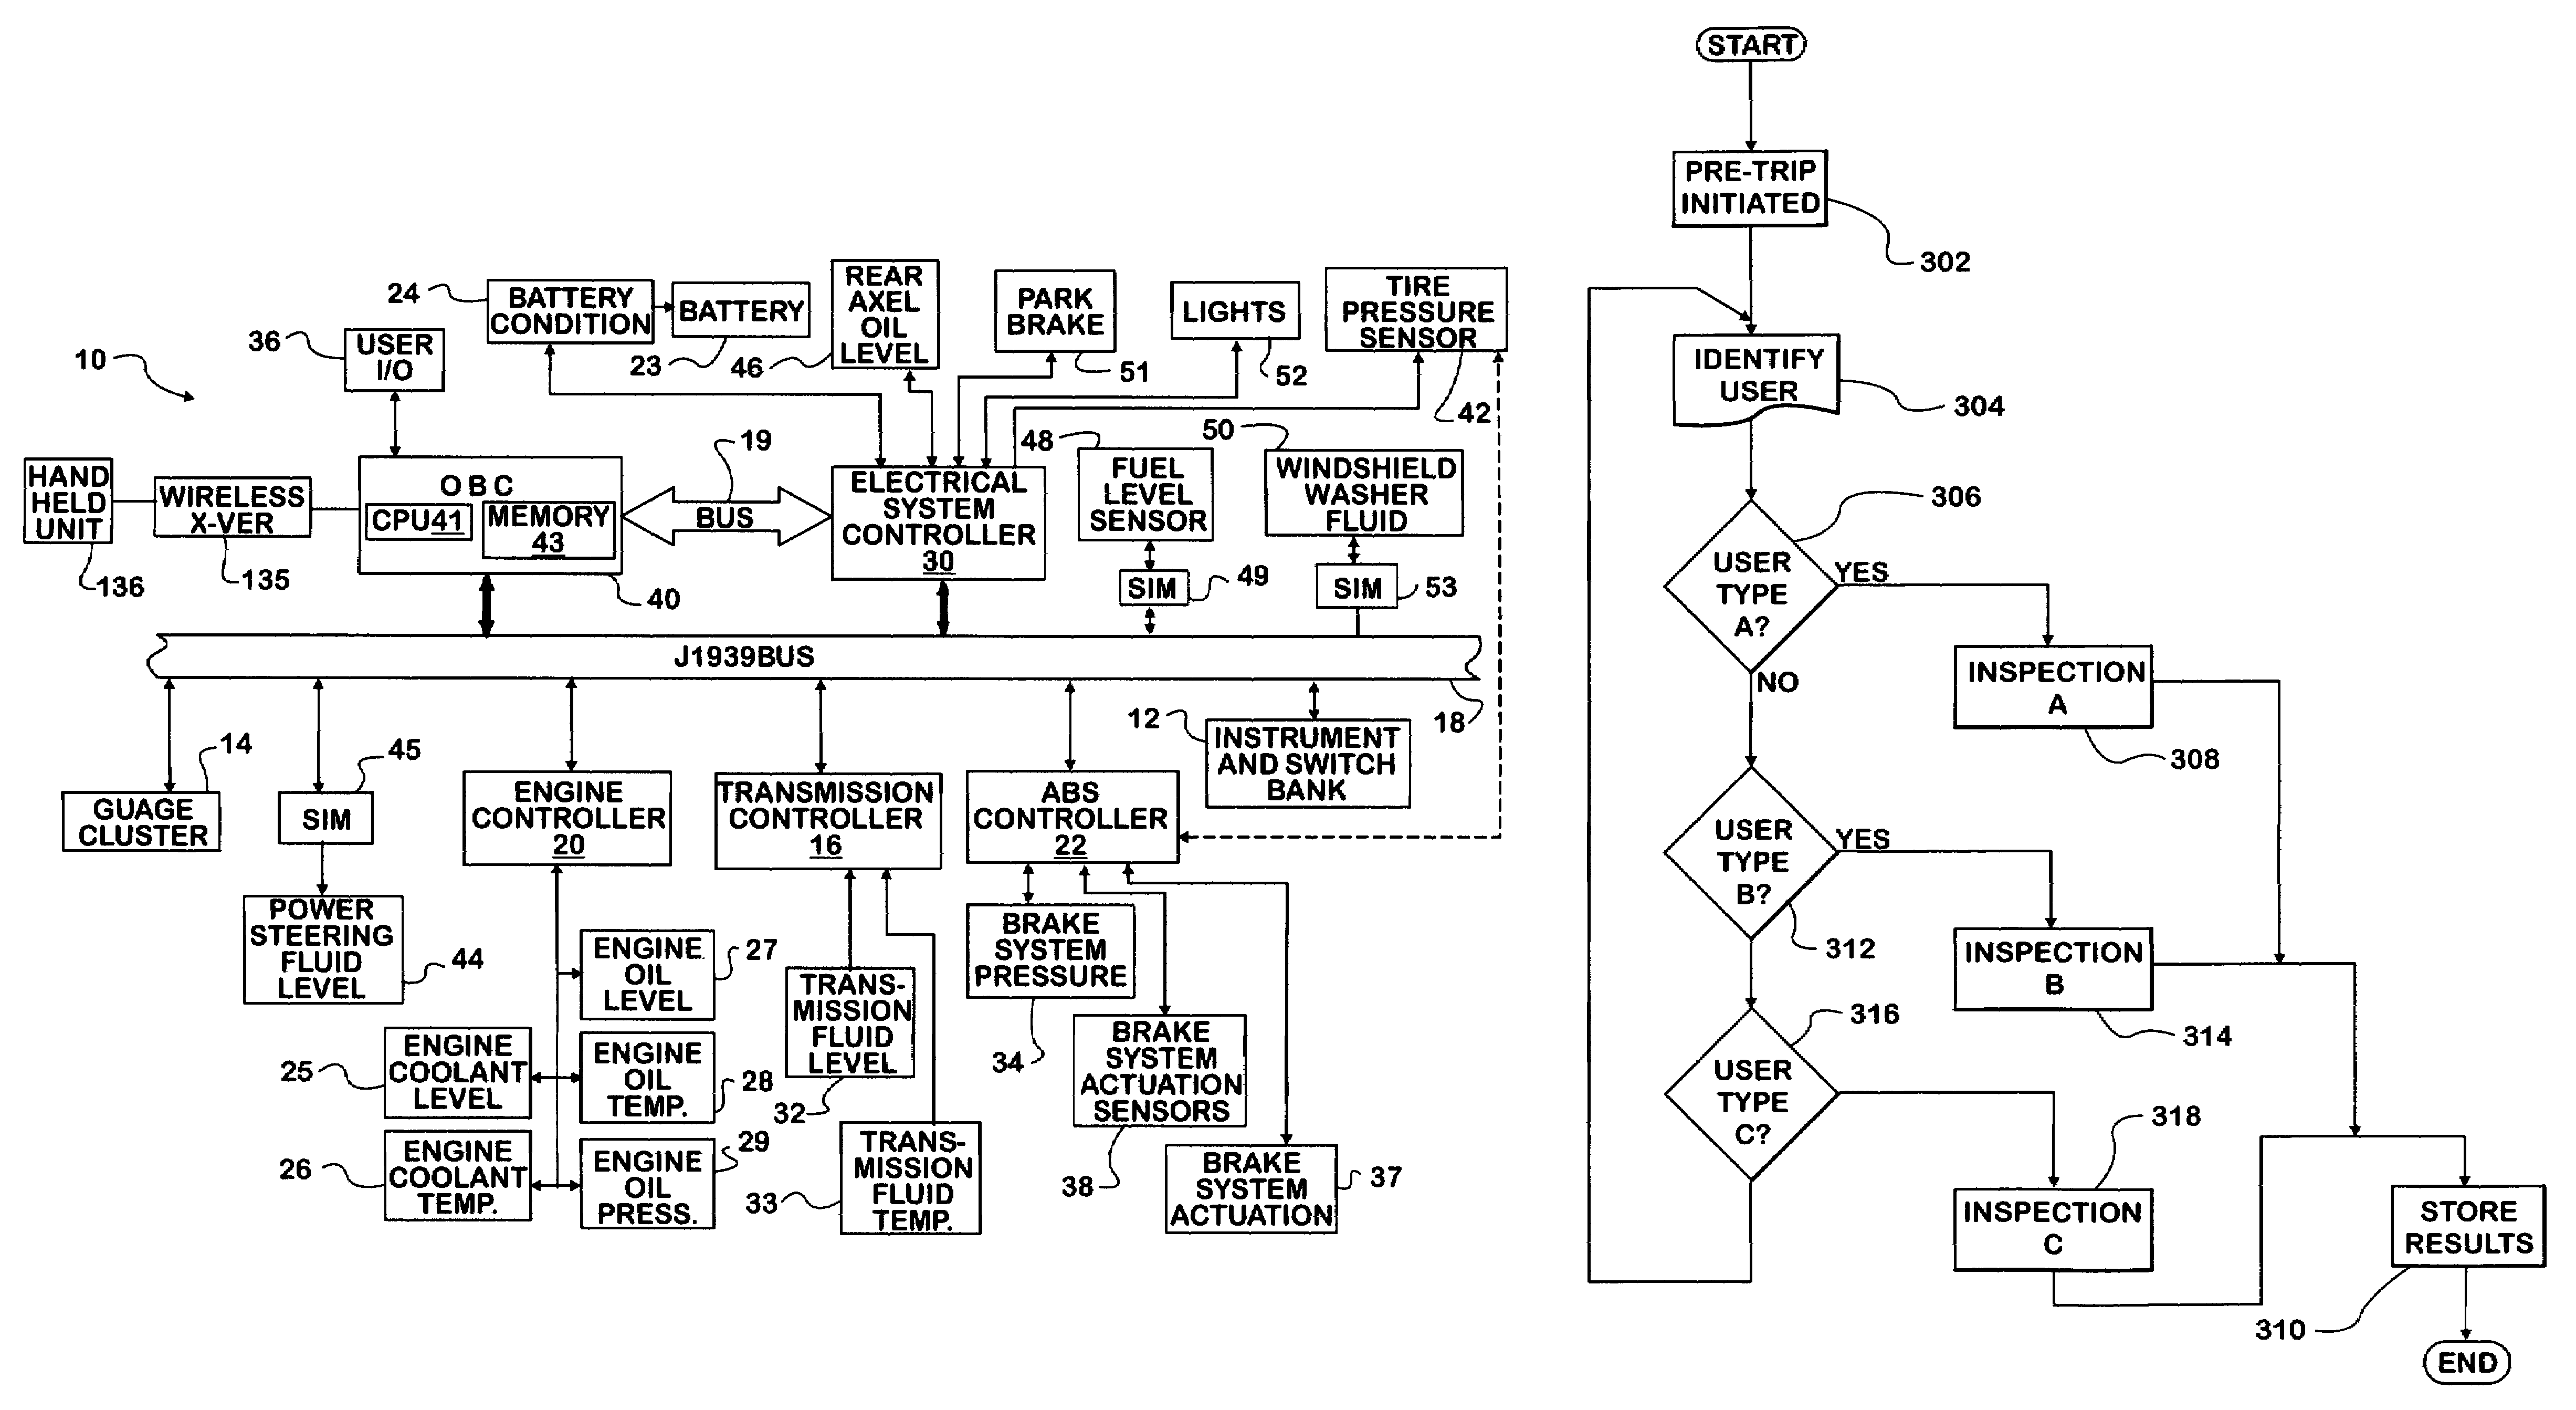 Patent us7263417 user adaptive automated pre trip A 1 inspections